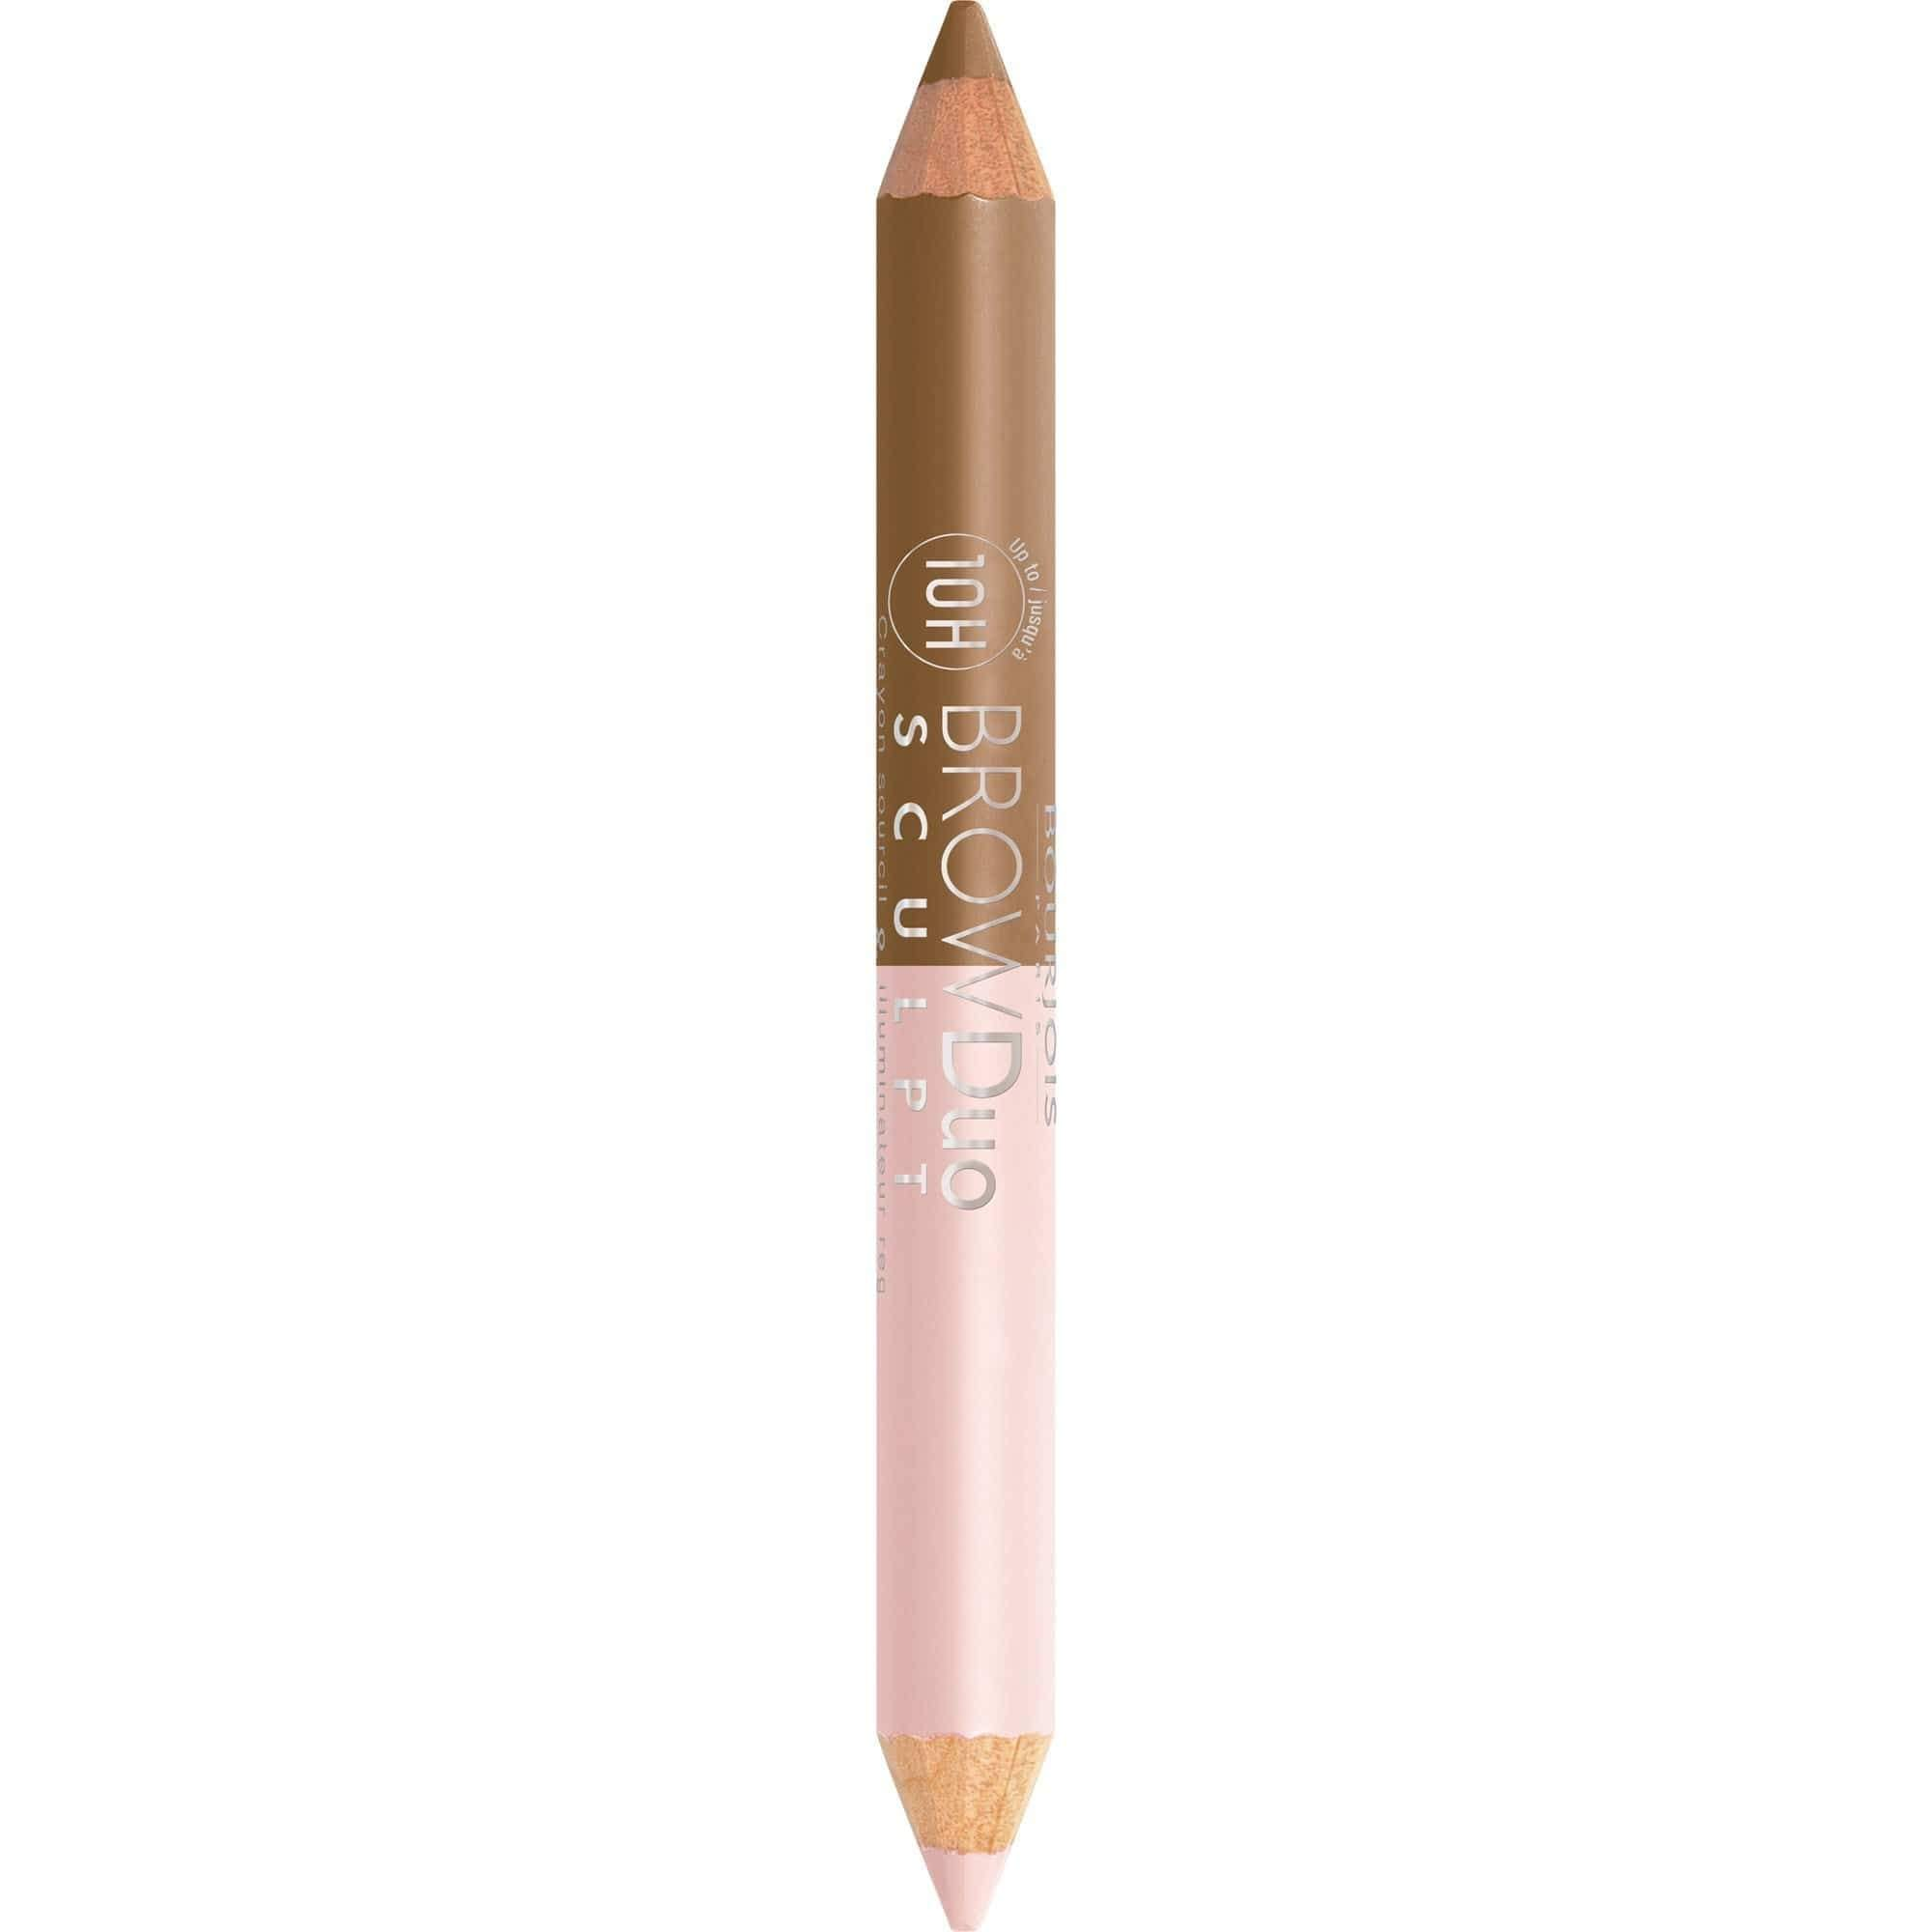 Bourjois_Crayon_Sourcils_Brow_Duo_Sculpt_Blonde